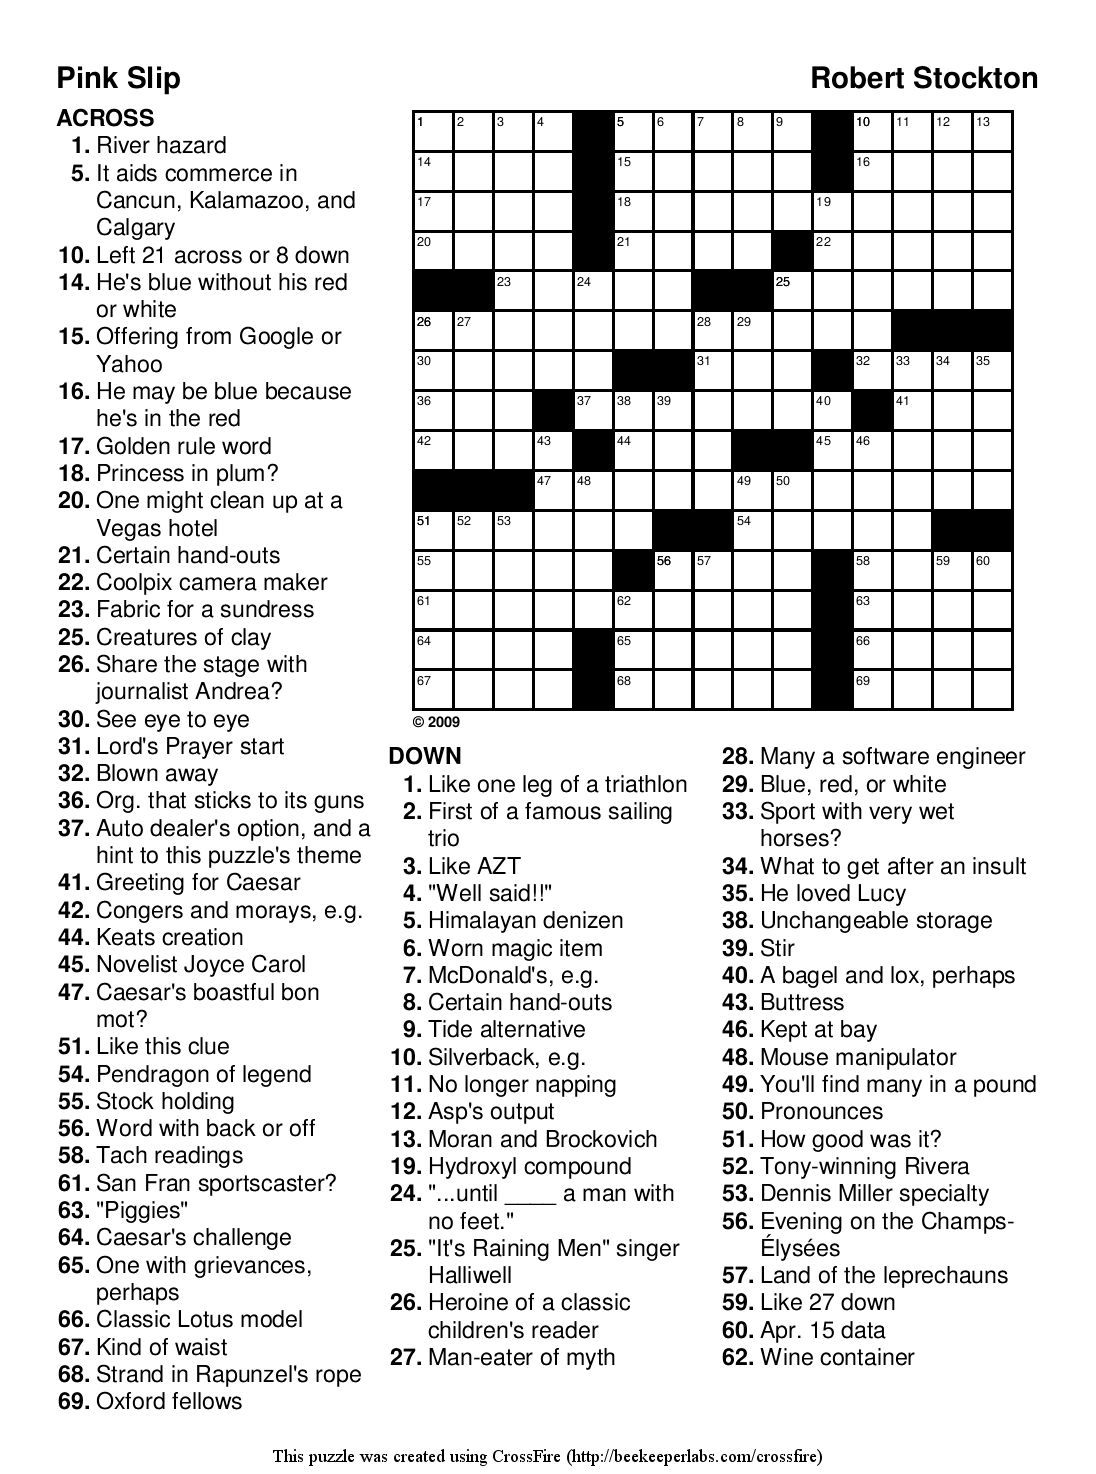 Printable Puzzles For Adults | Easy Word Puzzles Printable Festivals - Printable Crossword Puzzles For Adults Hard